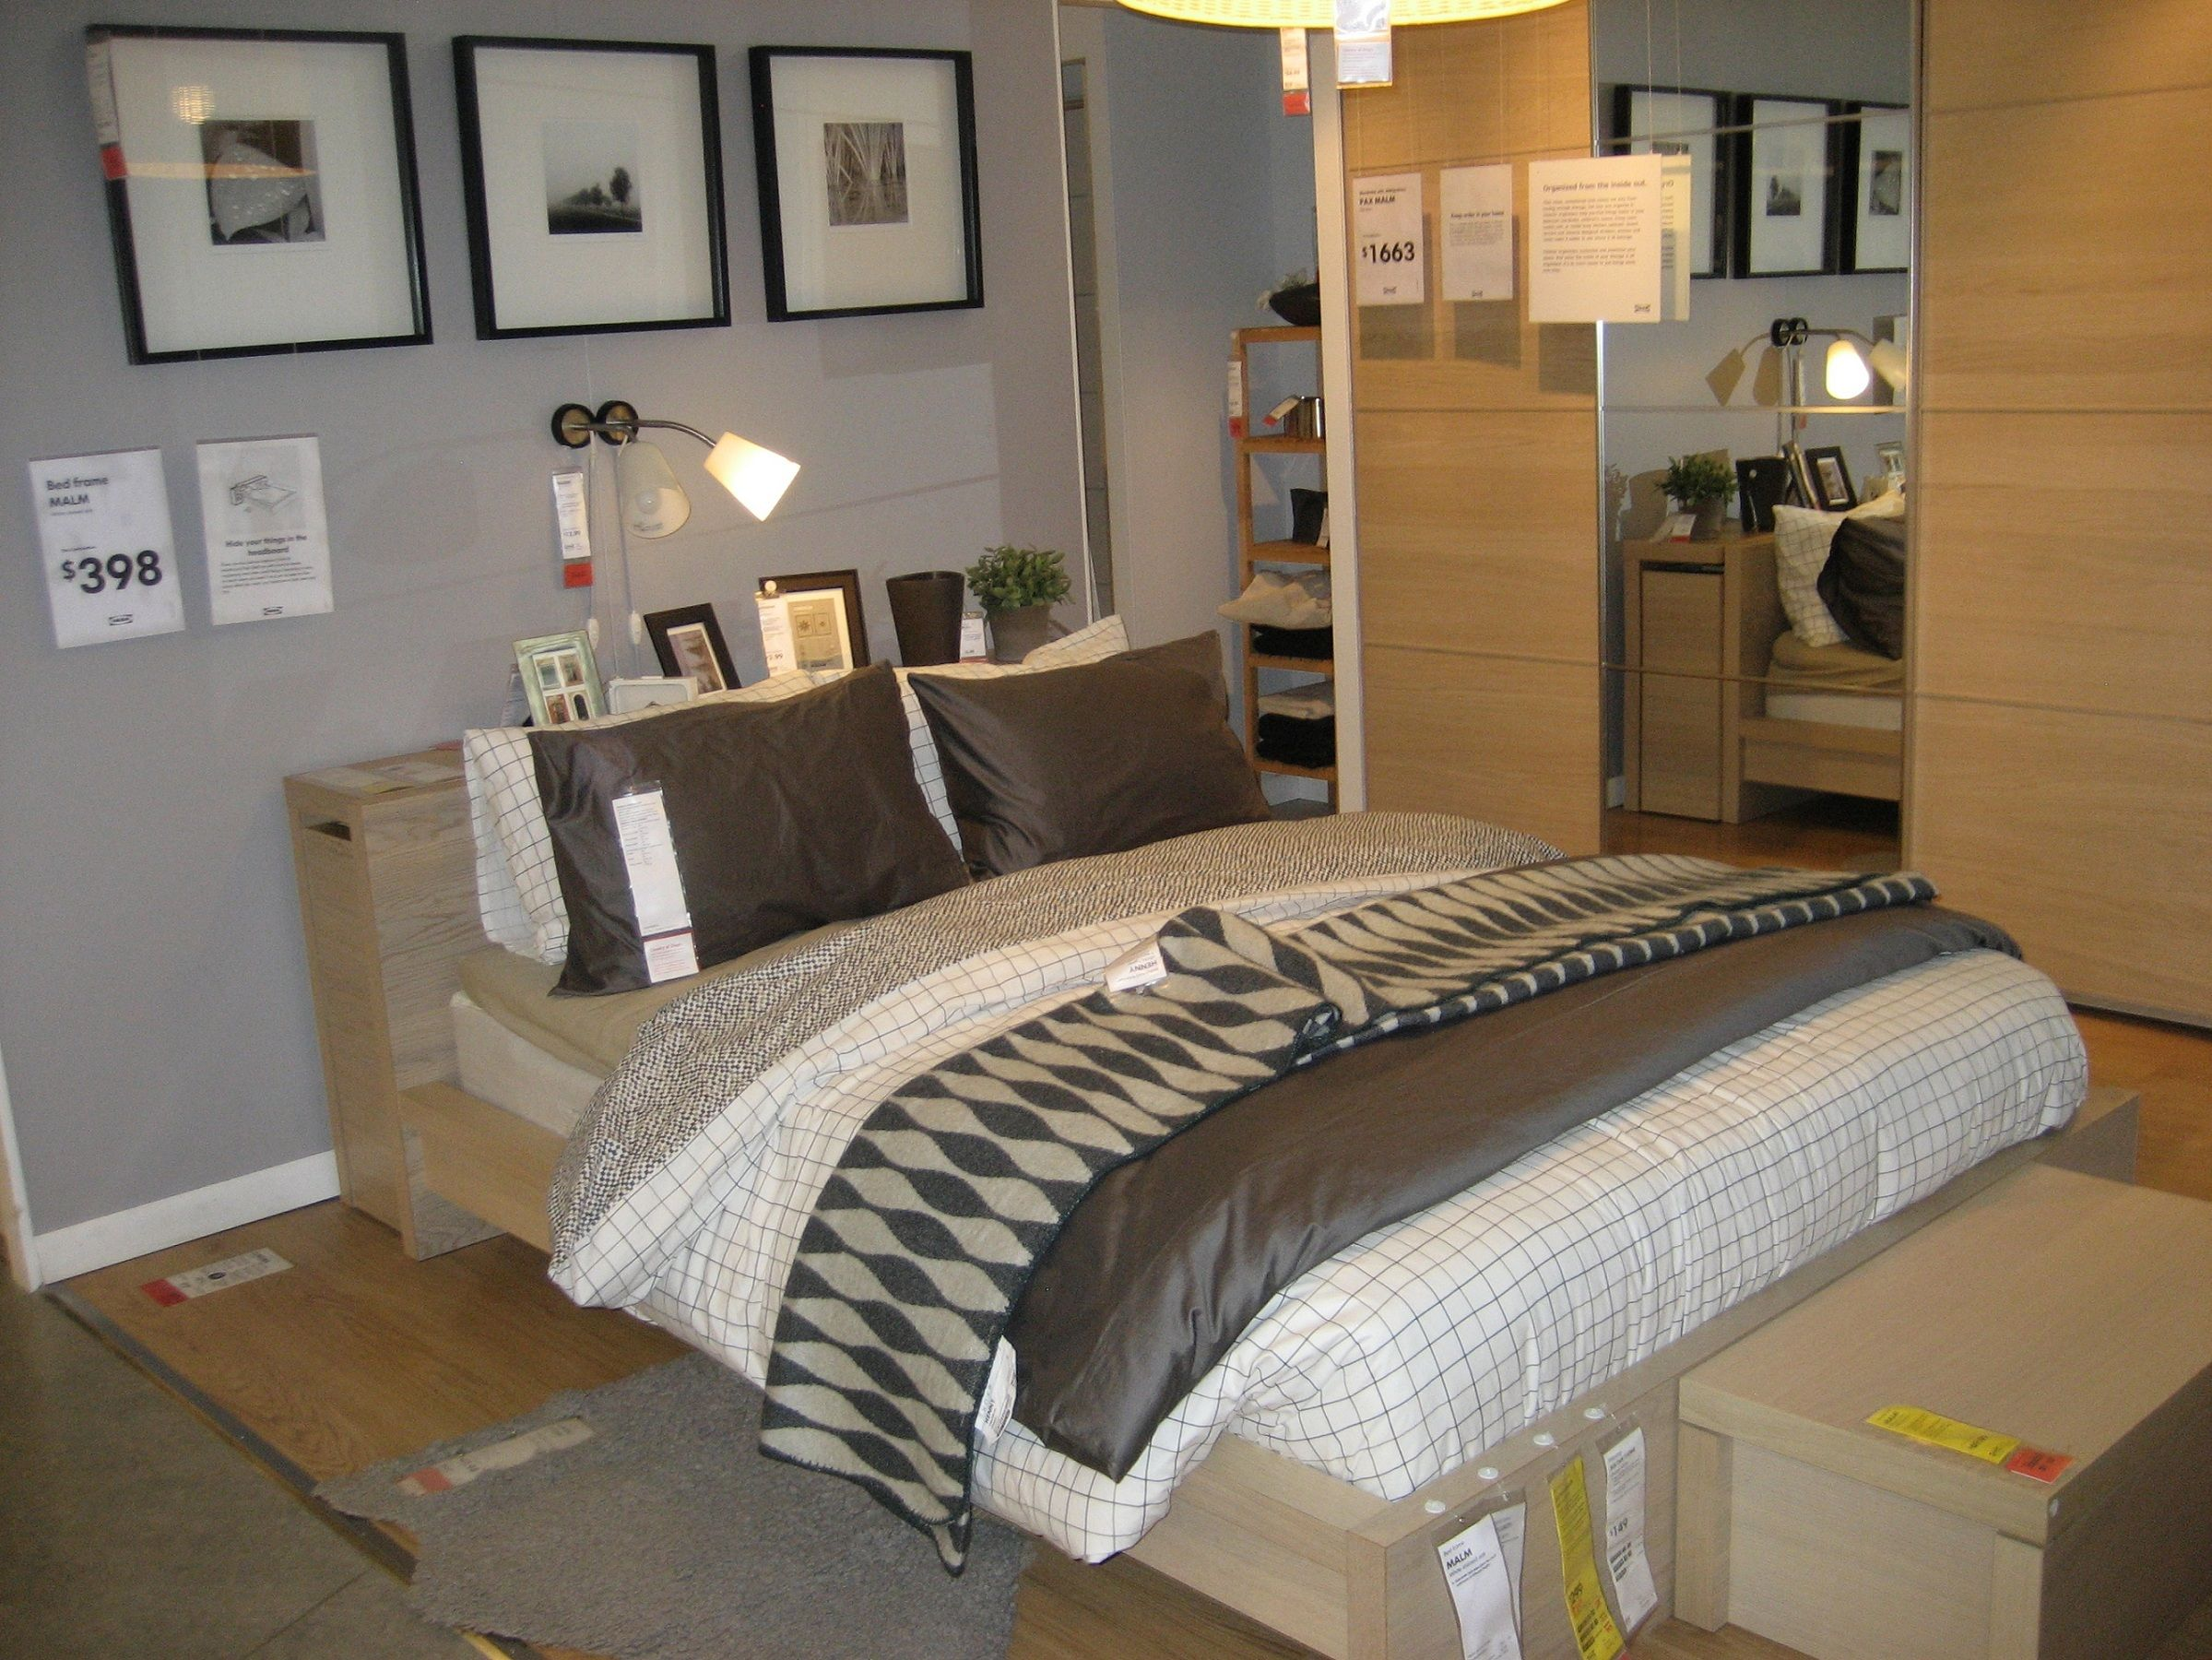 ikea bedroom sets 2015 | ARKI/ENGR | Pinterest | Ikea bedroom sets ...